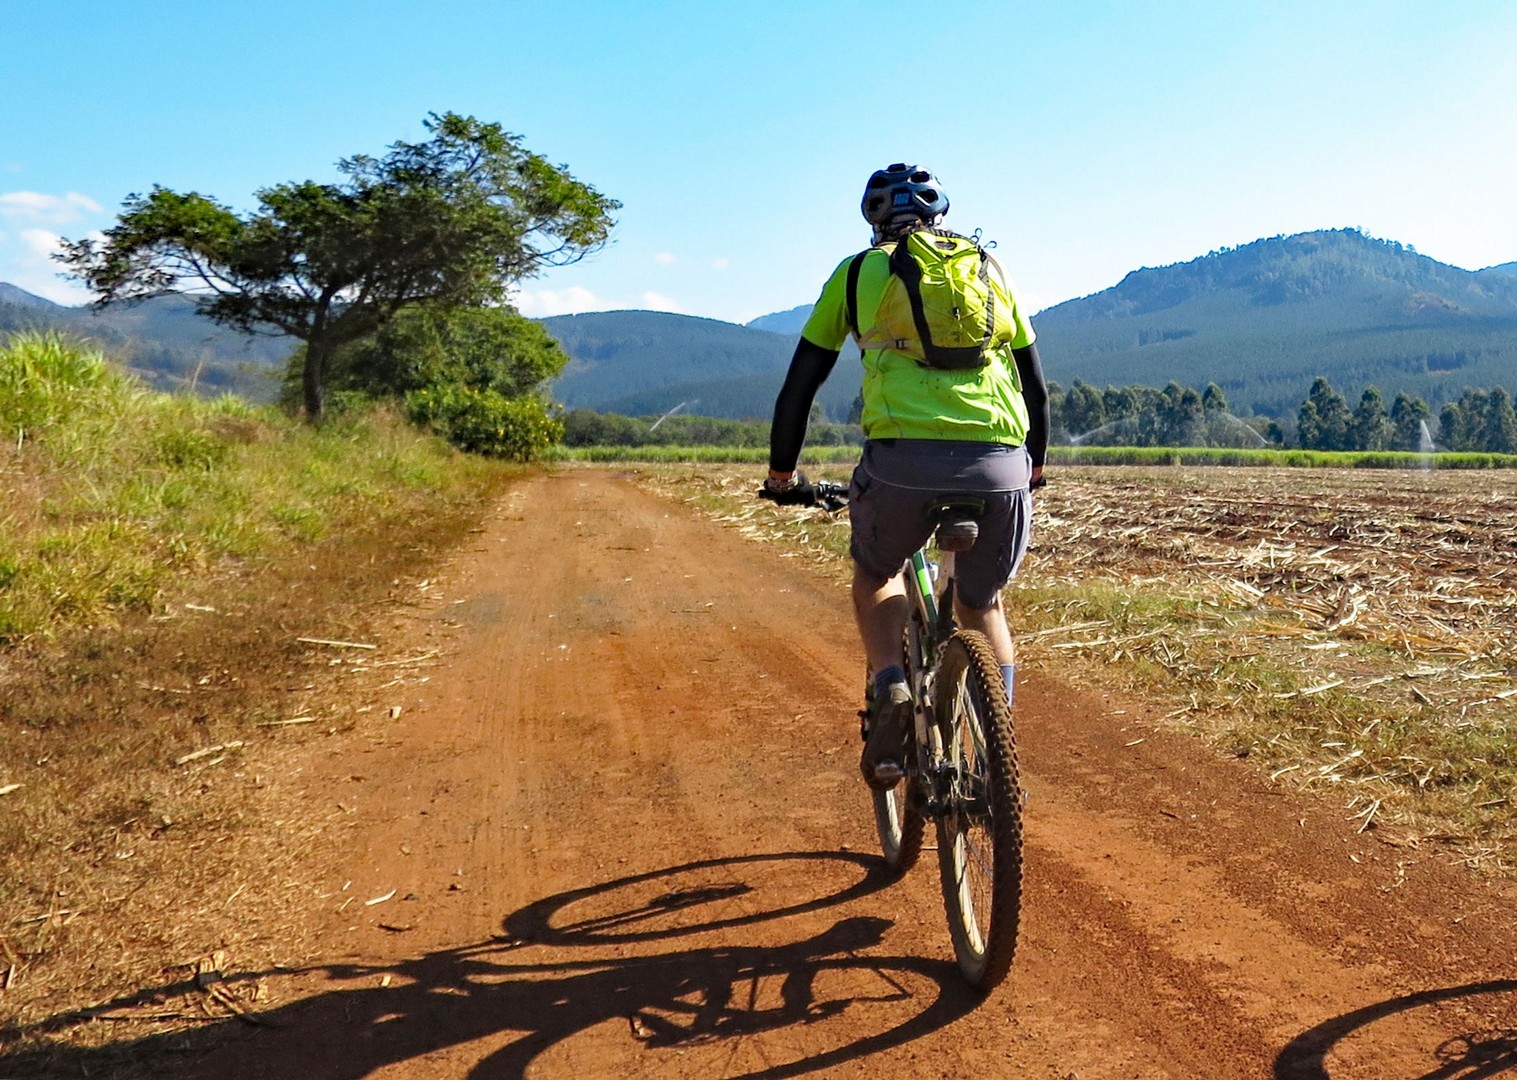 south-africa-africa-swaziland-cycling-holiday.jpg - Swaziland - Cycling Safari - Cycling Adventures